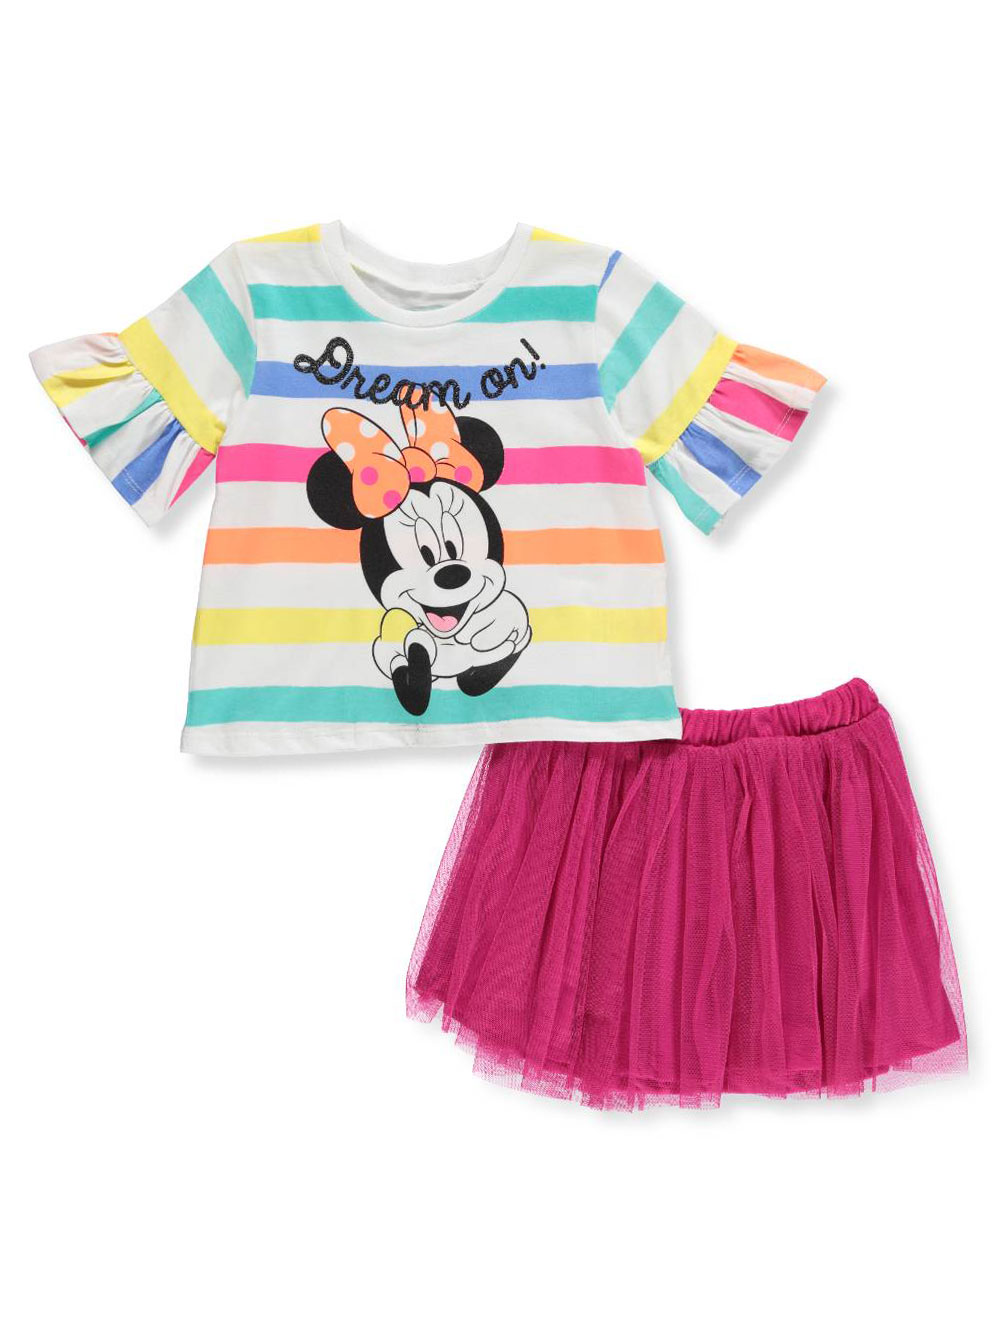 c6941012bc Disney Minnie Mouse Girls  2-Piece Skirt Set Outfit